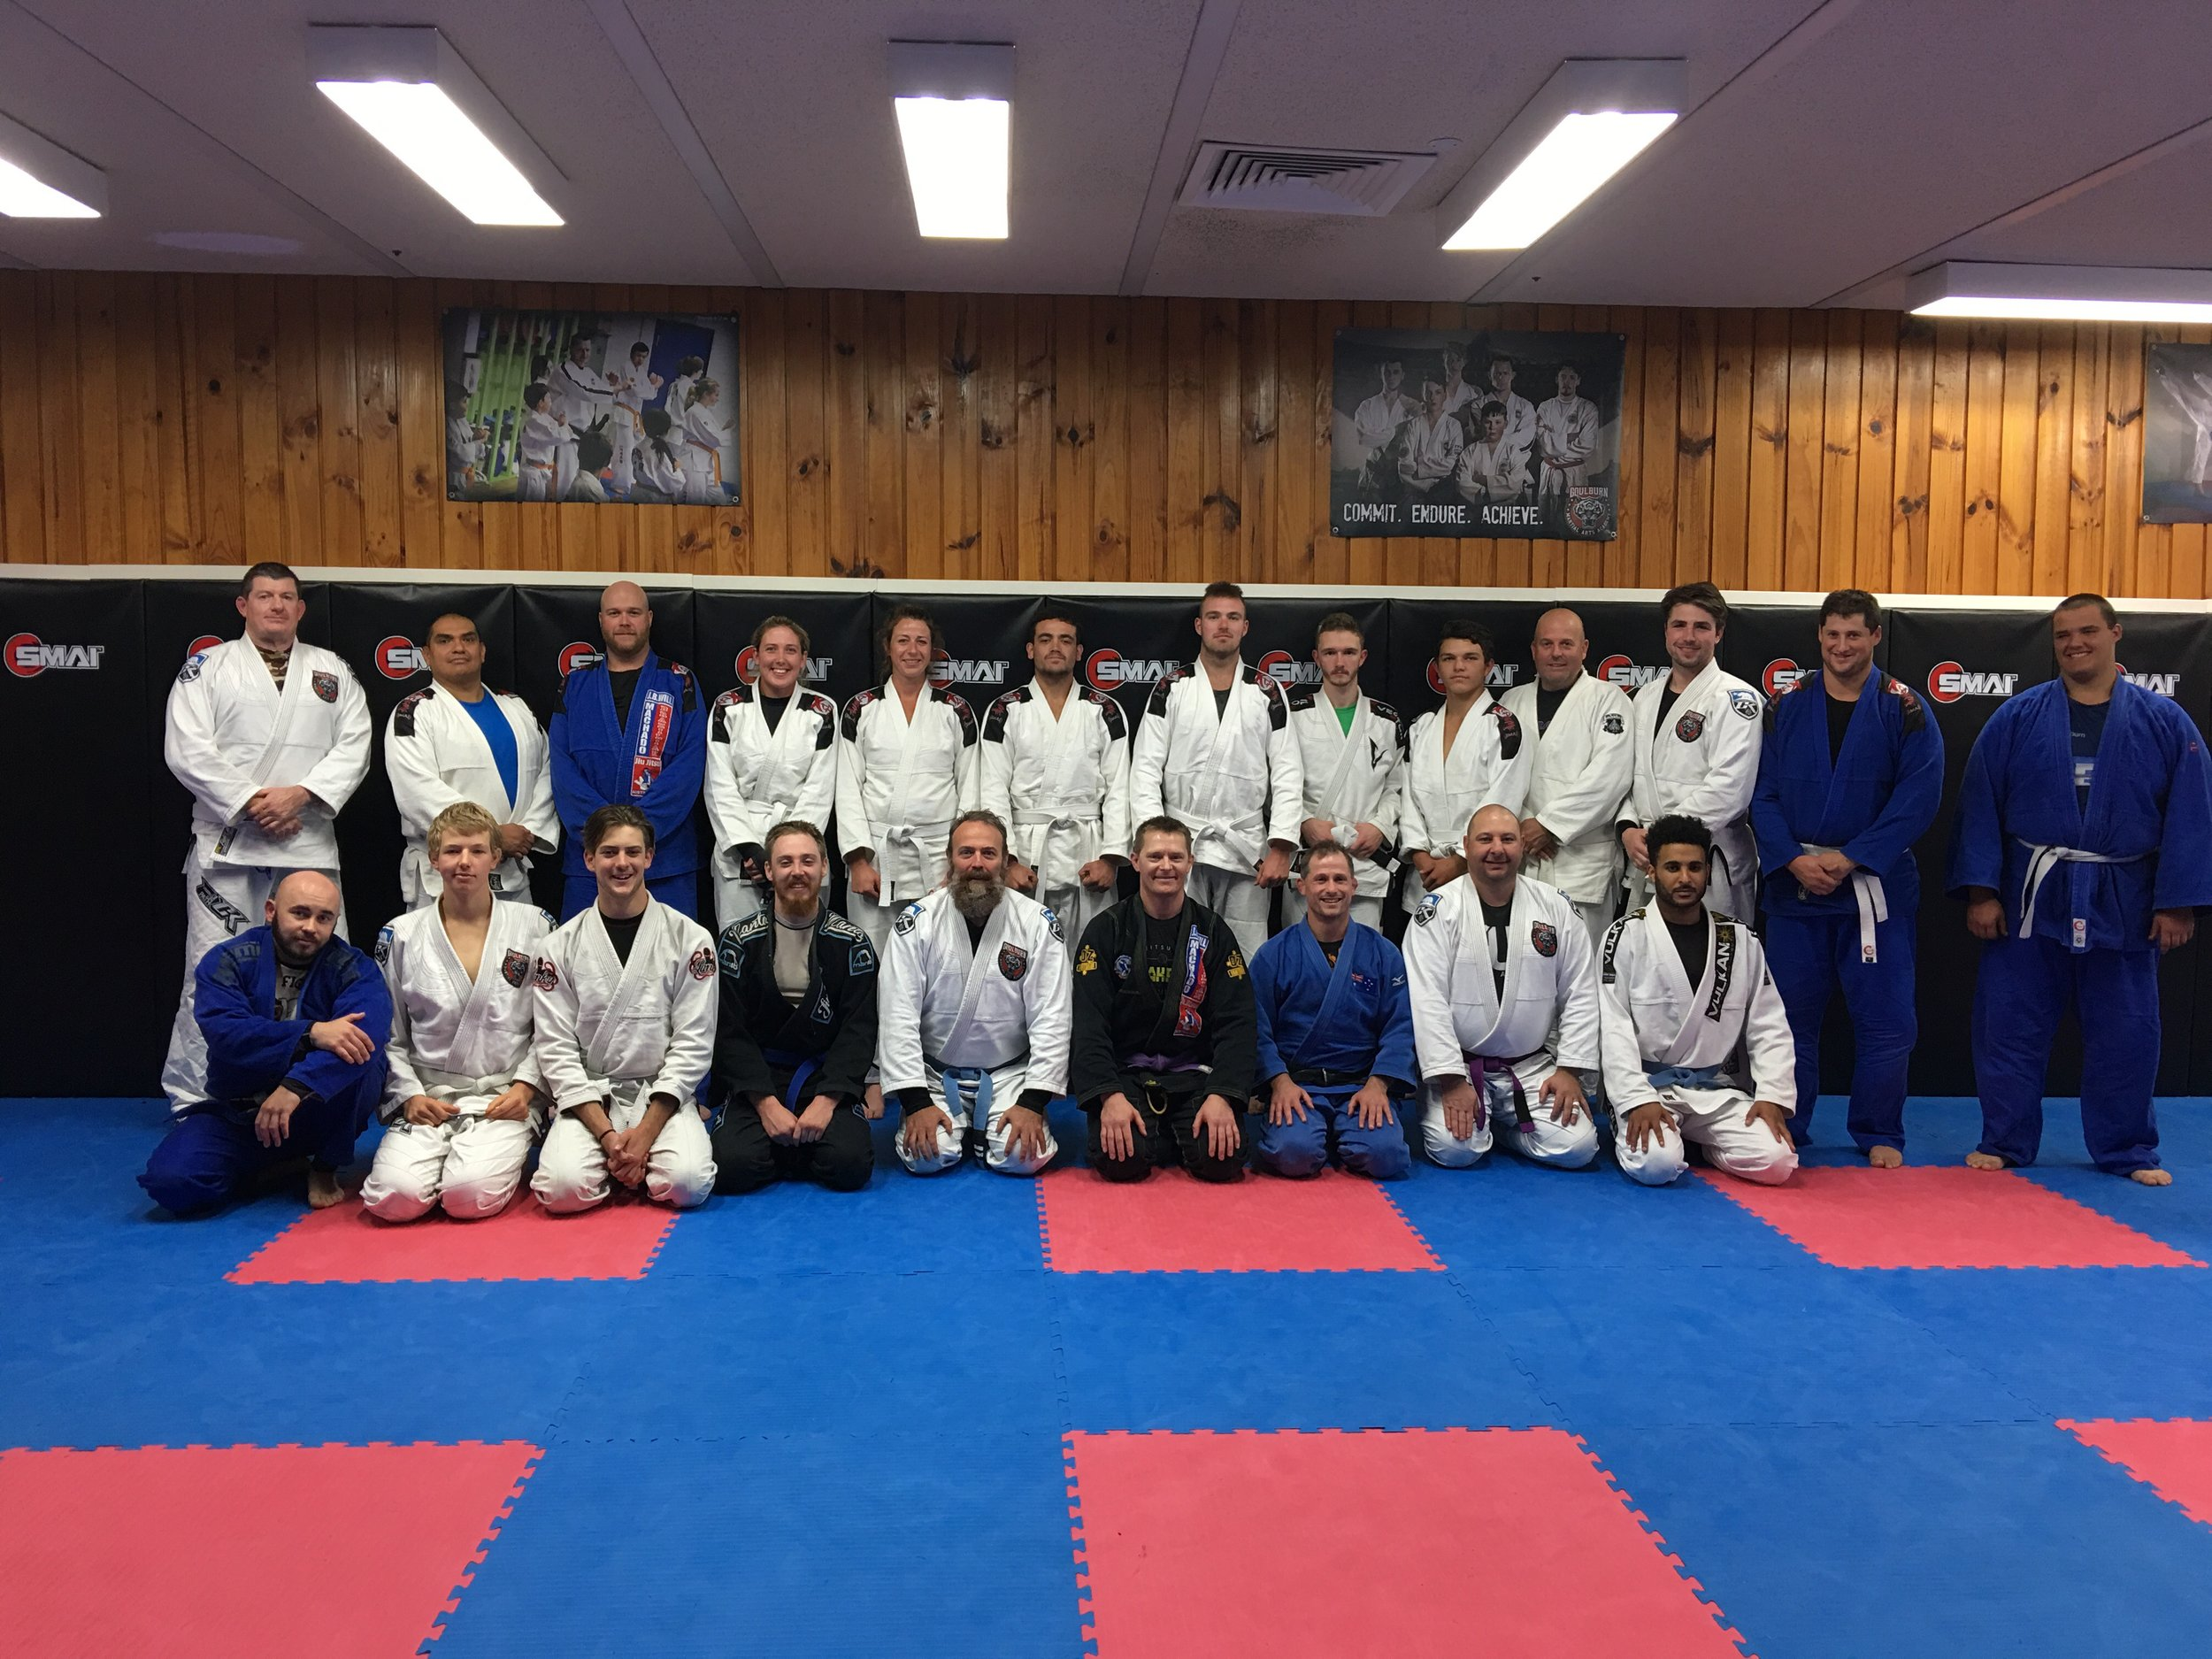 Our Adults Brazilian Jiu jitsu program is humming along with our biggest white belt grading to date (Image of a recent seminar). Thanks so much for everyone for being part of the team. I will try and find an image of the grading for you. Thanks for your efforts and congratulations.